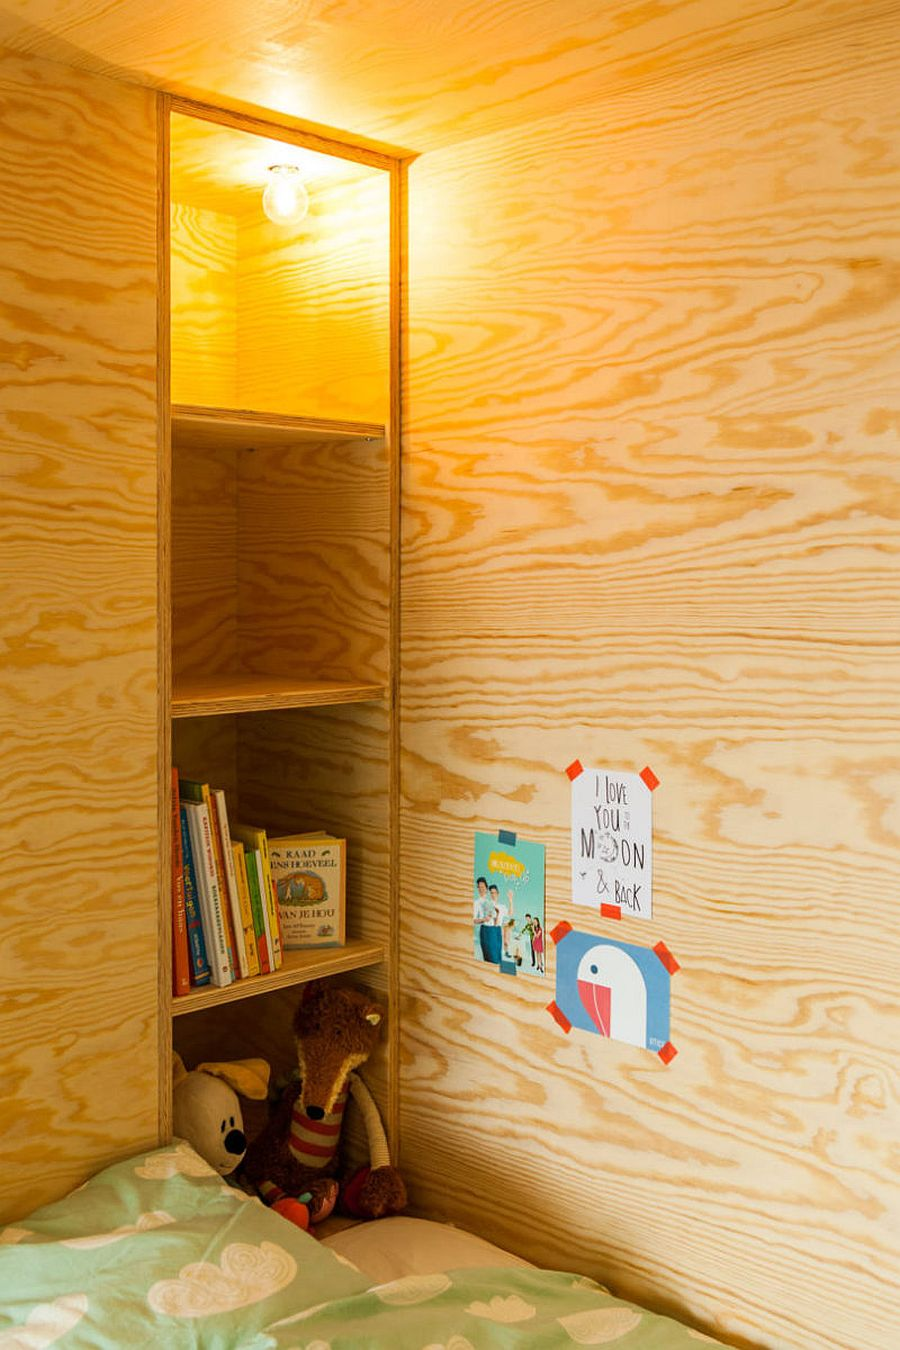 Bespoke Brilliance Twin Bed Wall In Kids Room With Loft